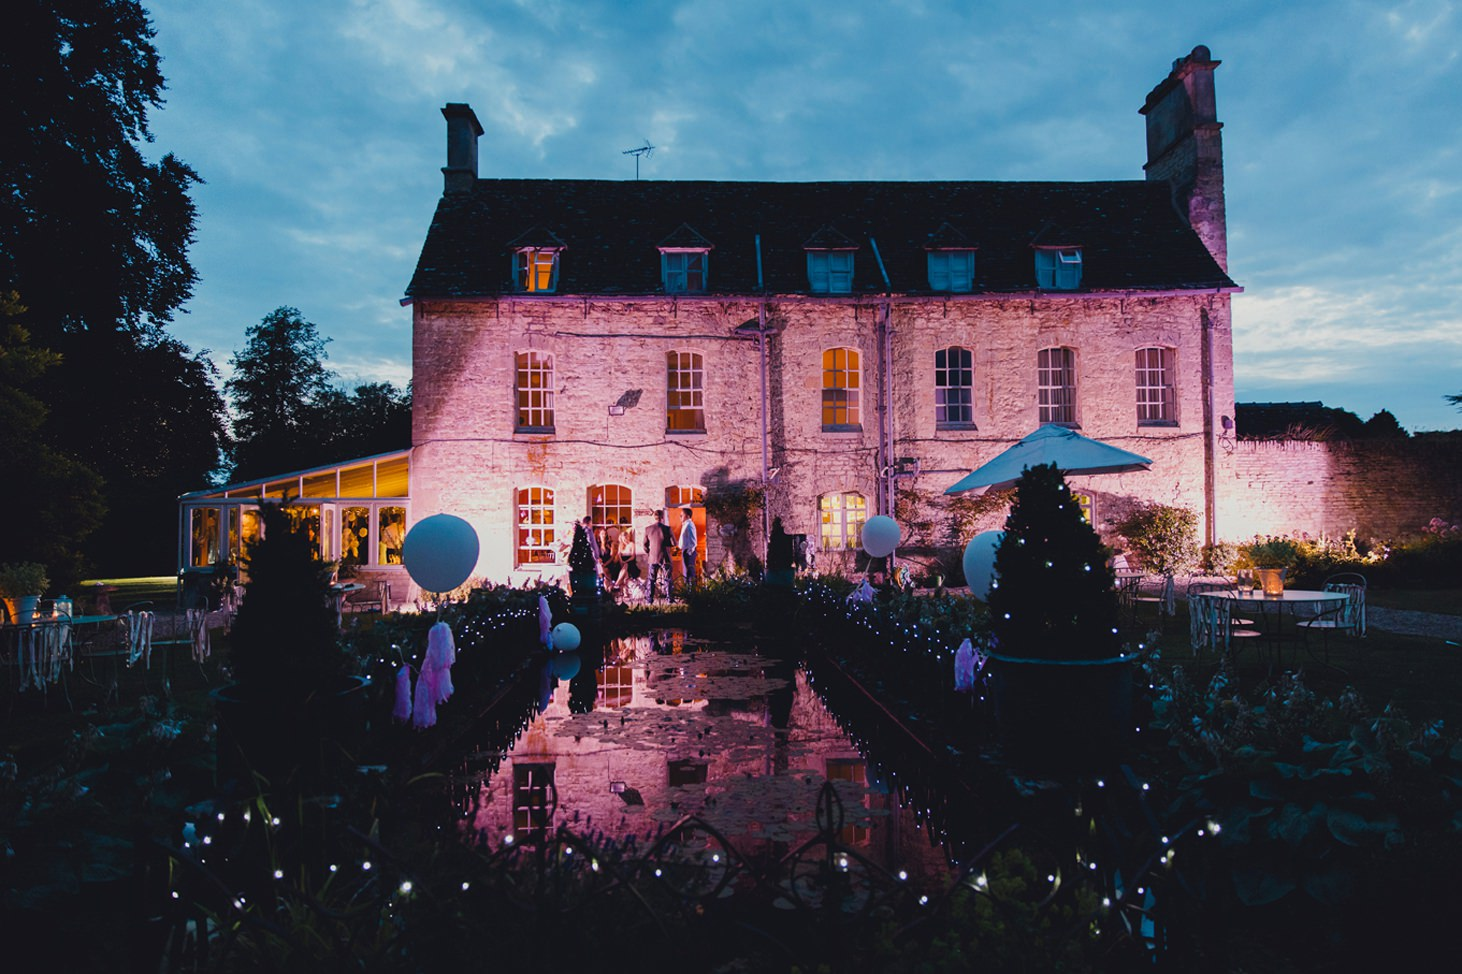 The Rectory Hotel Crudwell gardens at night